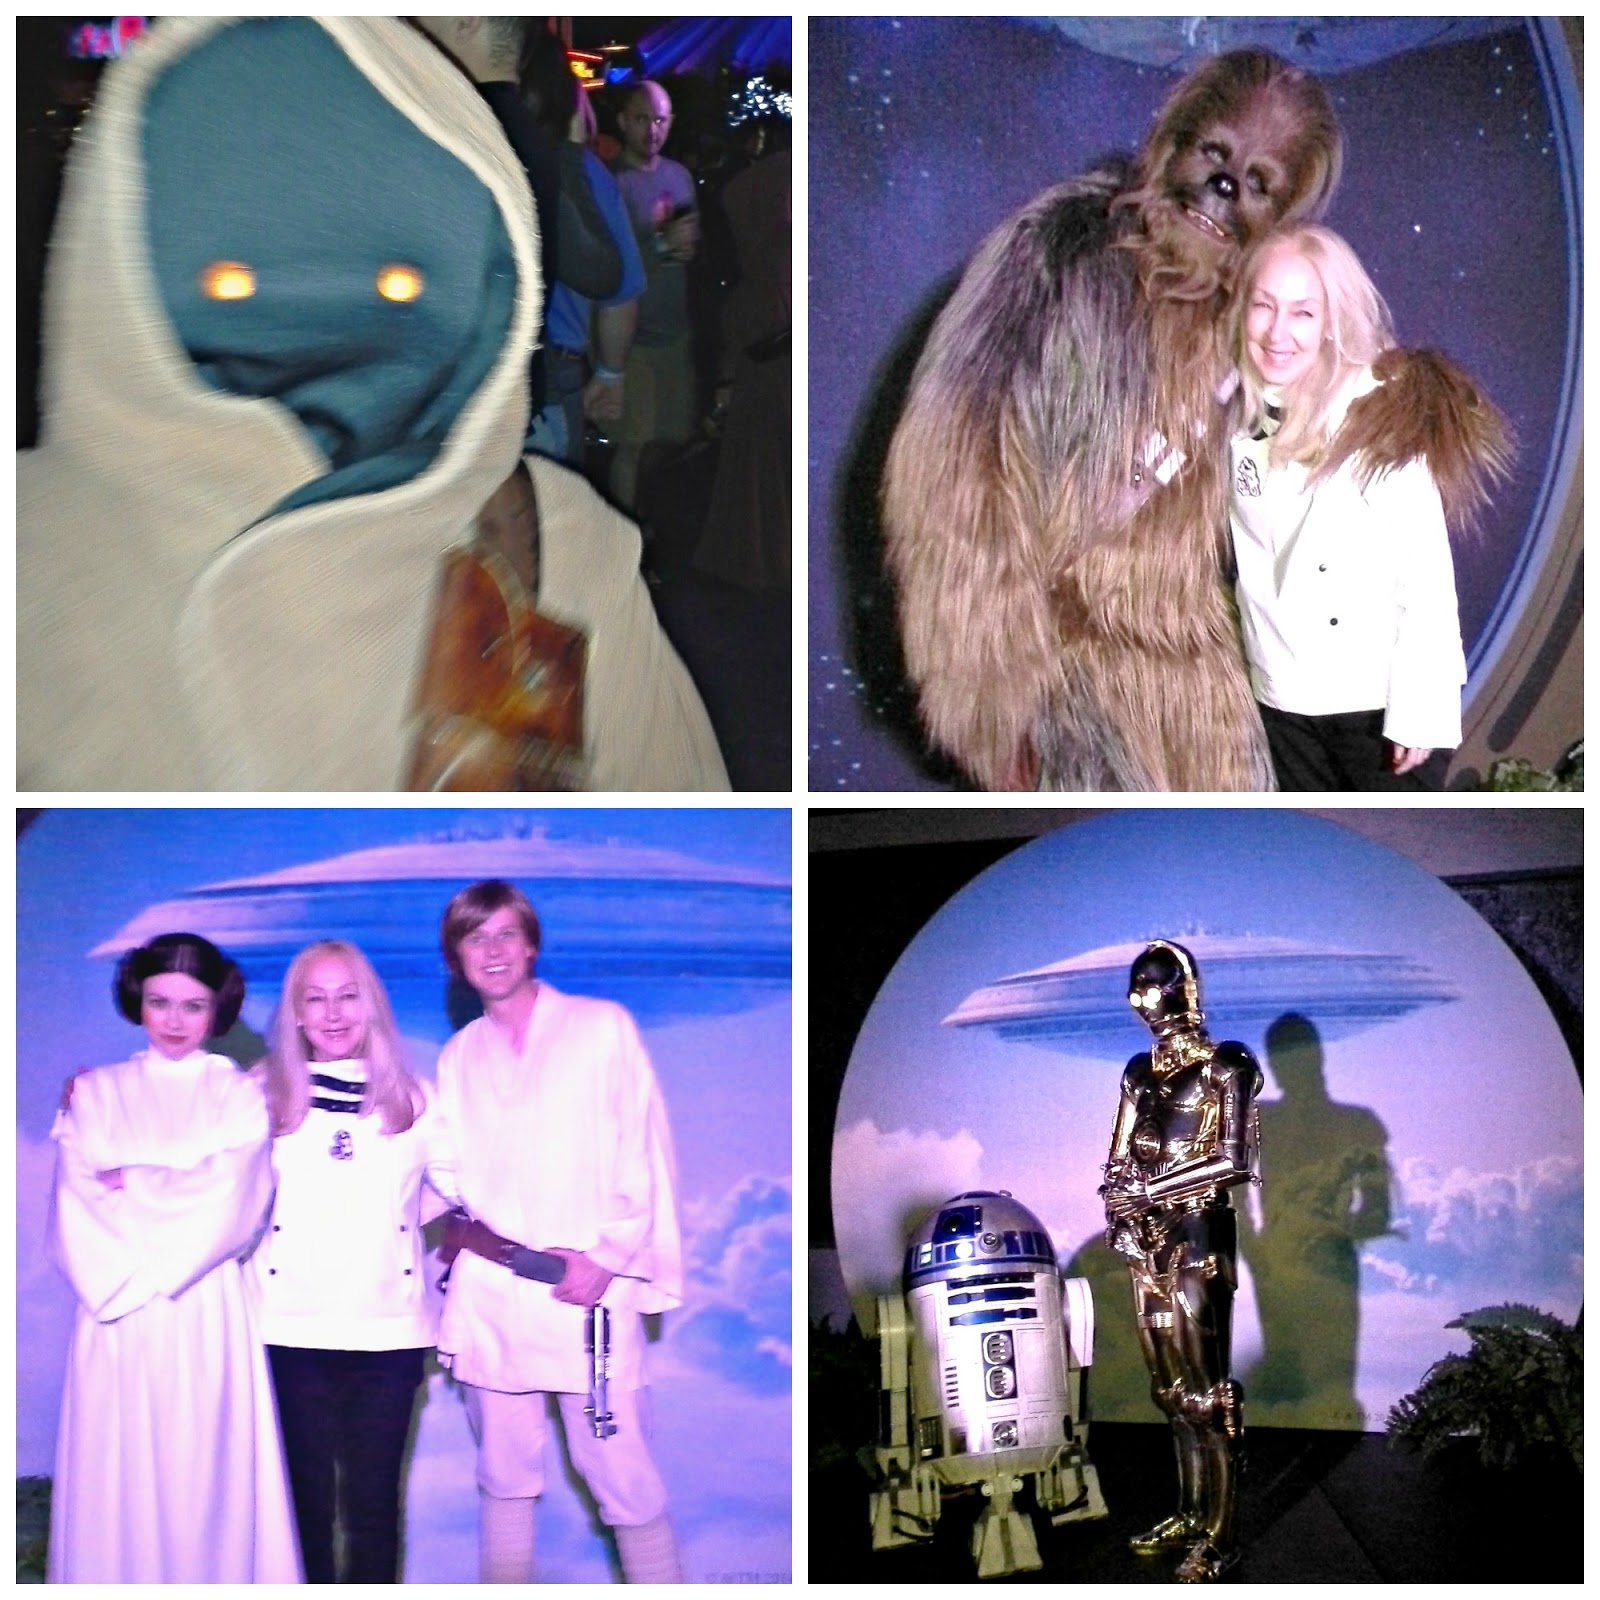 Exclusive star wars imperial meet n greet location opens in for me the highlight of the inaugural star wars half marathon weekend was the characters m4hsunfo